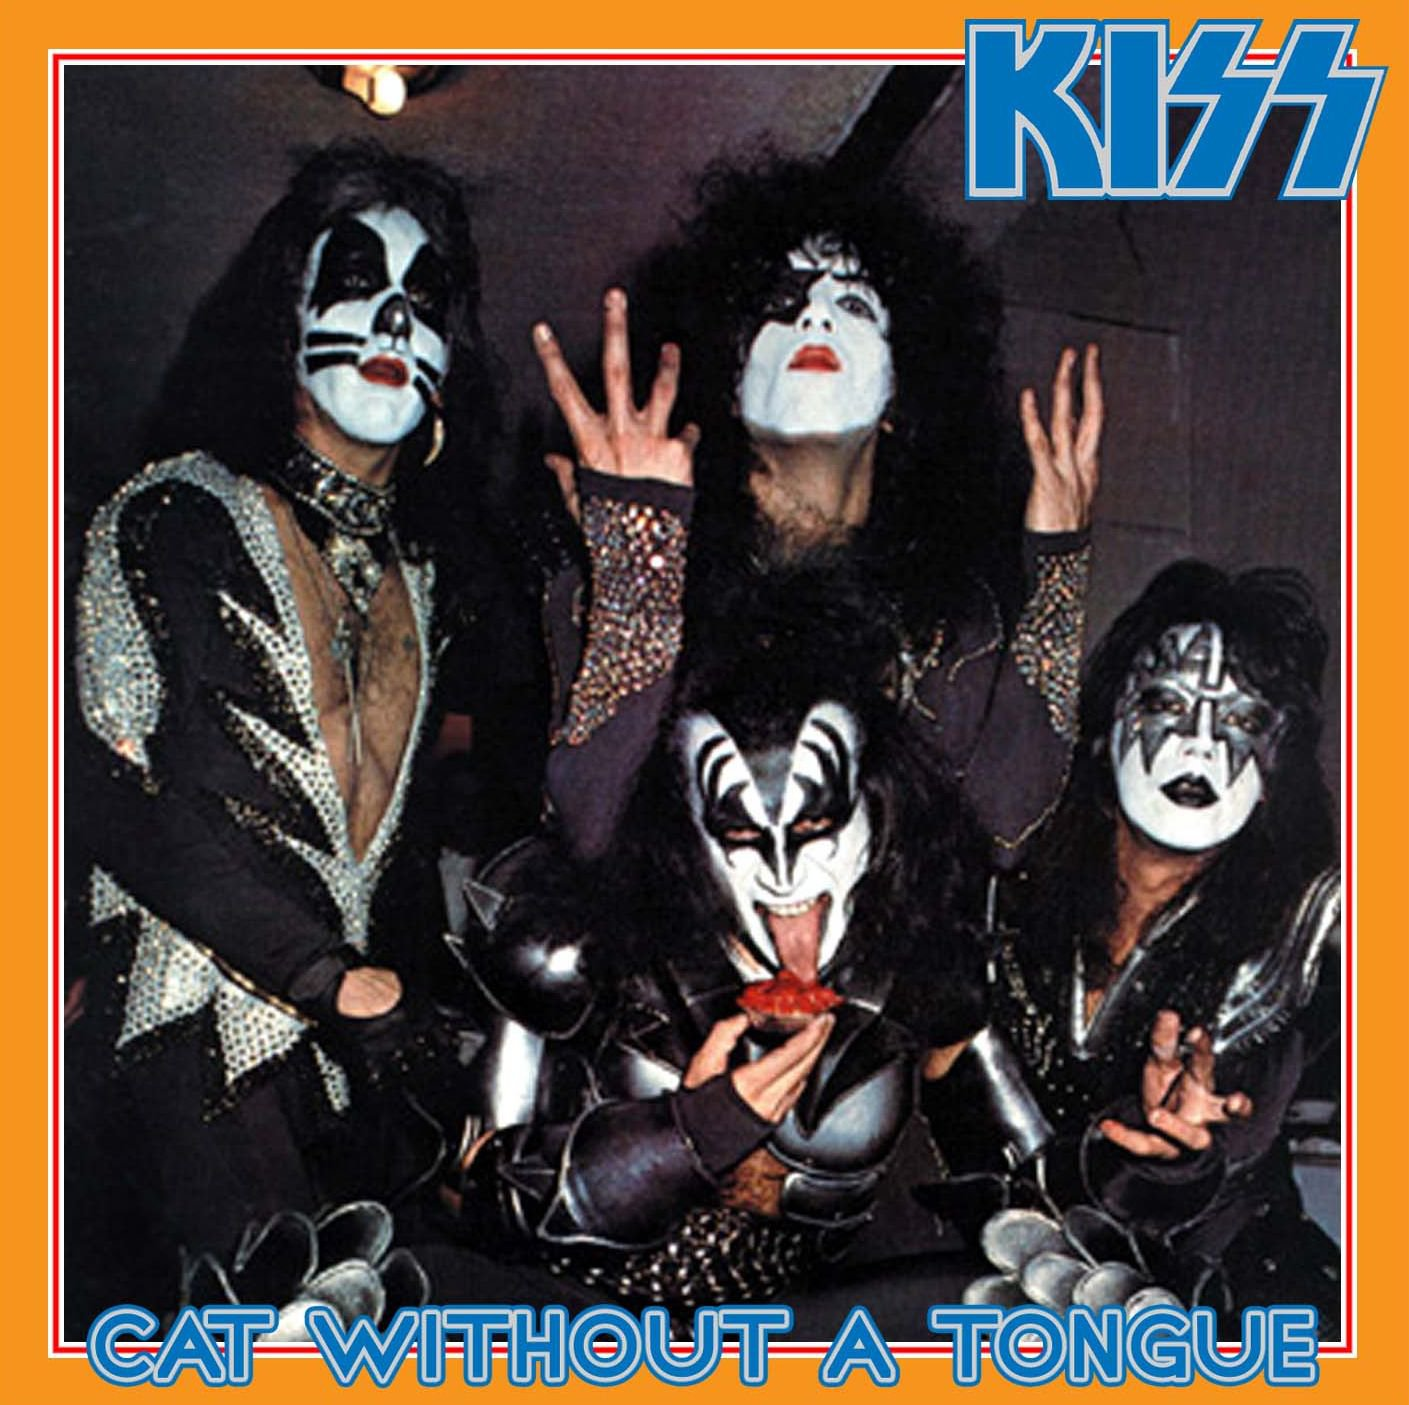 KISS CD - Johnson City 1977